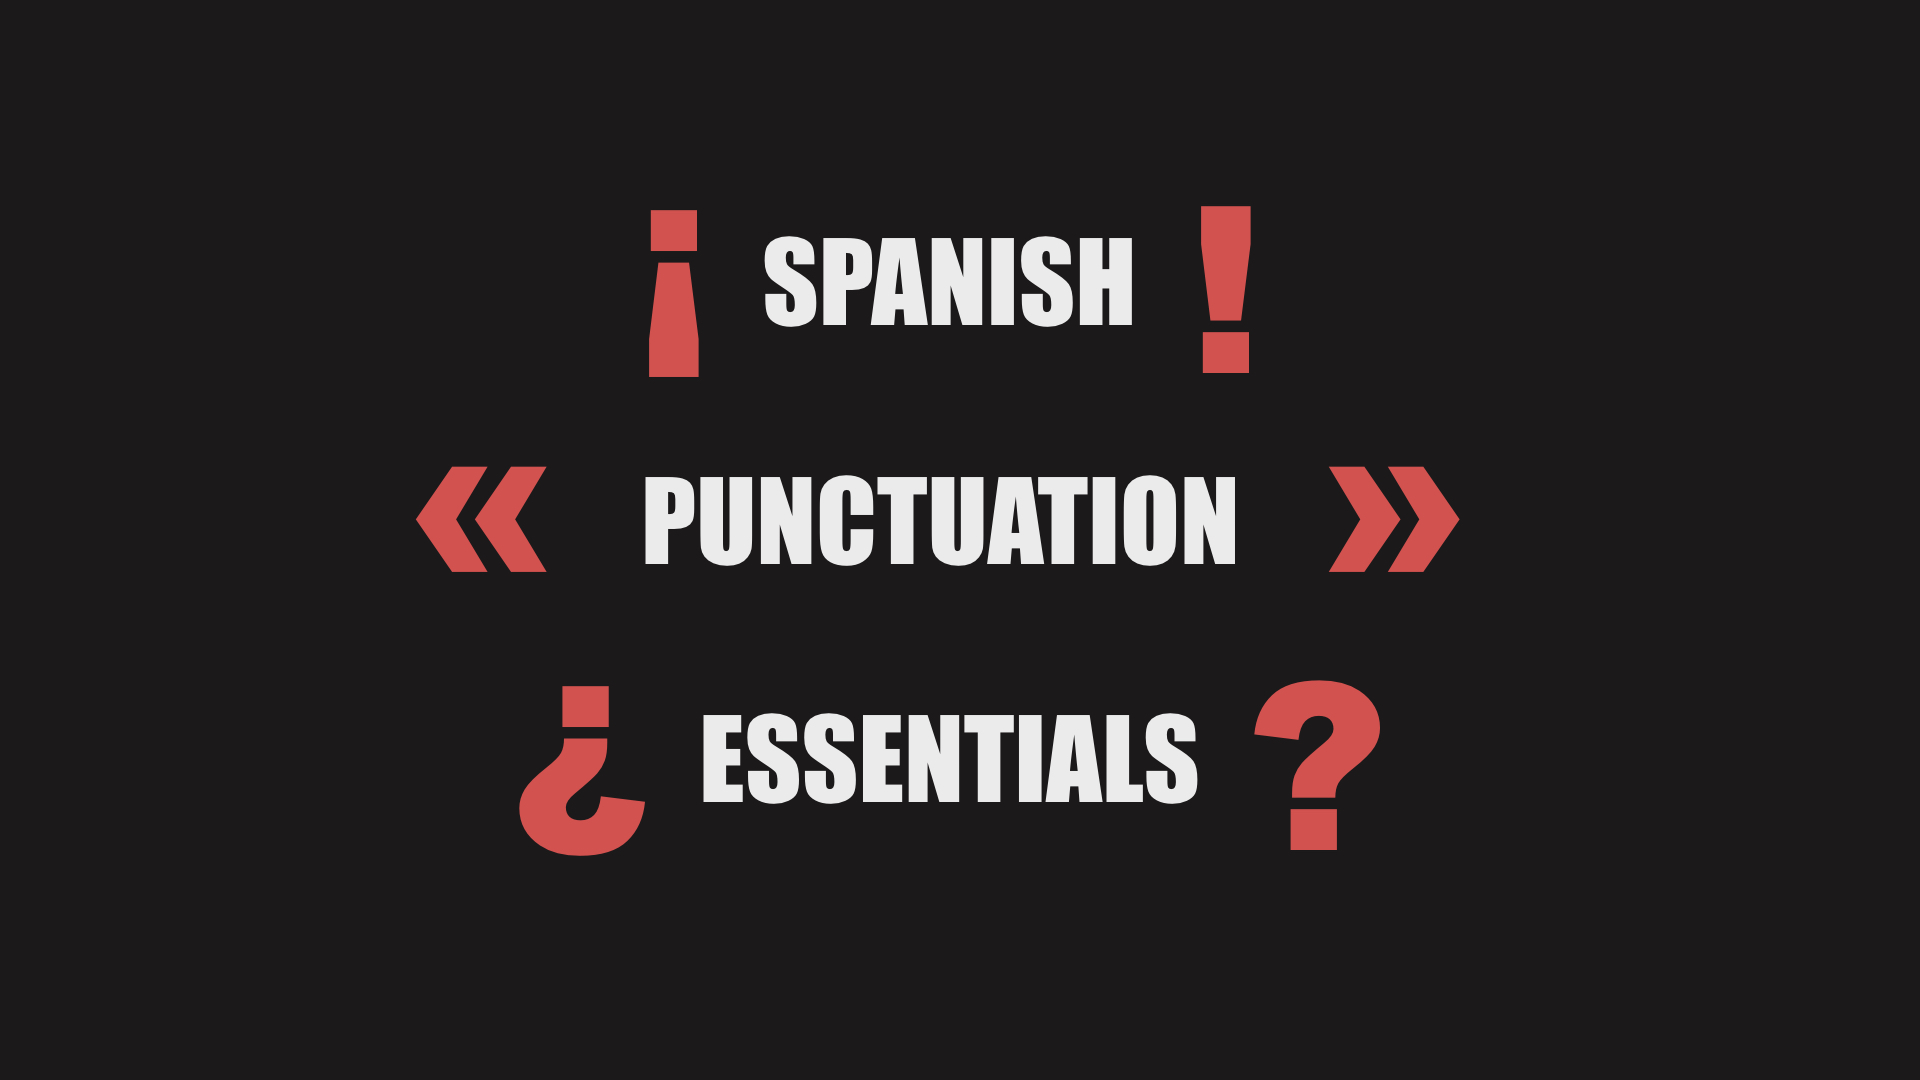 Spanish Punctuation Essentials Question Marks Exclamations Quotes